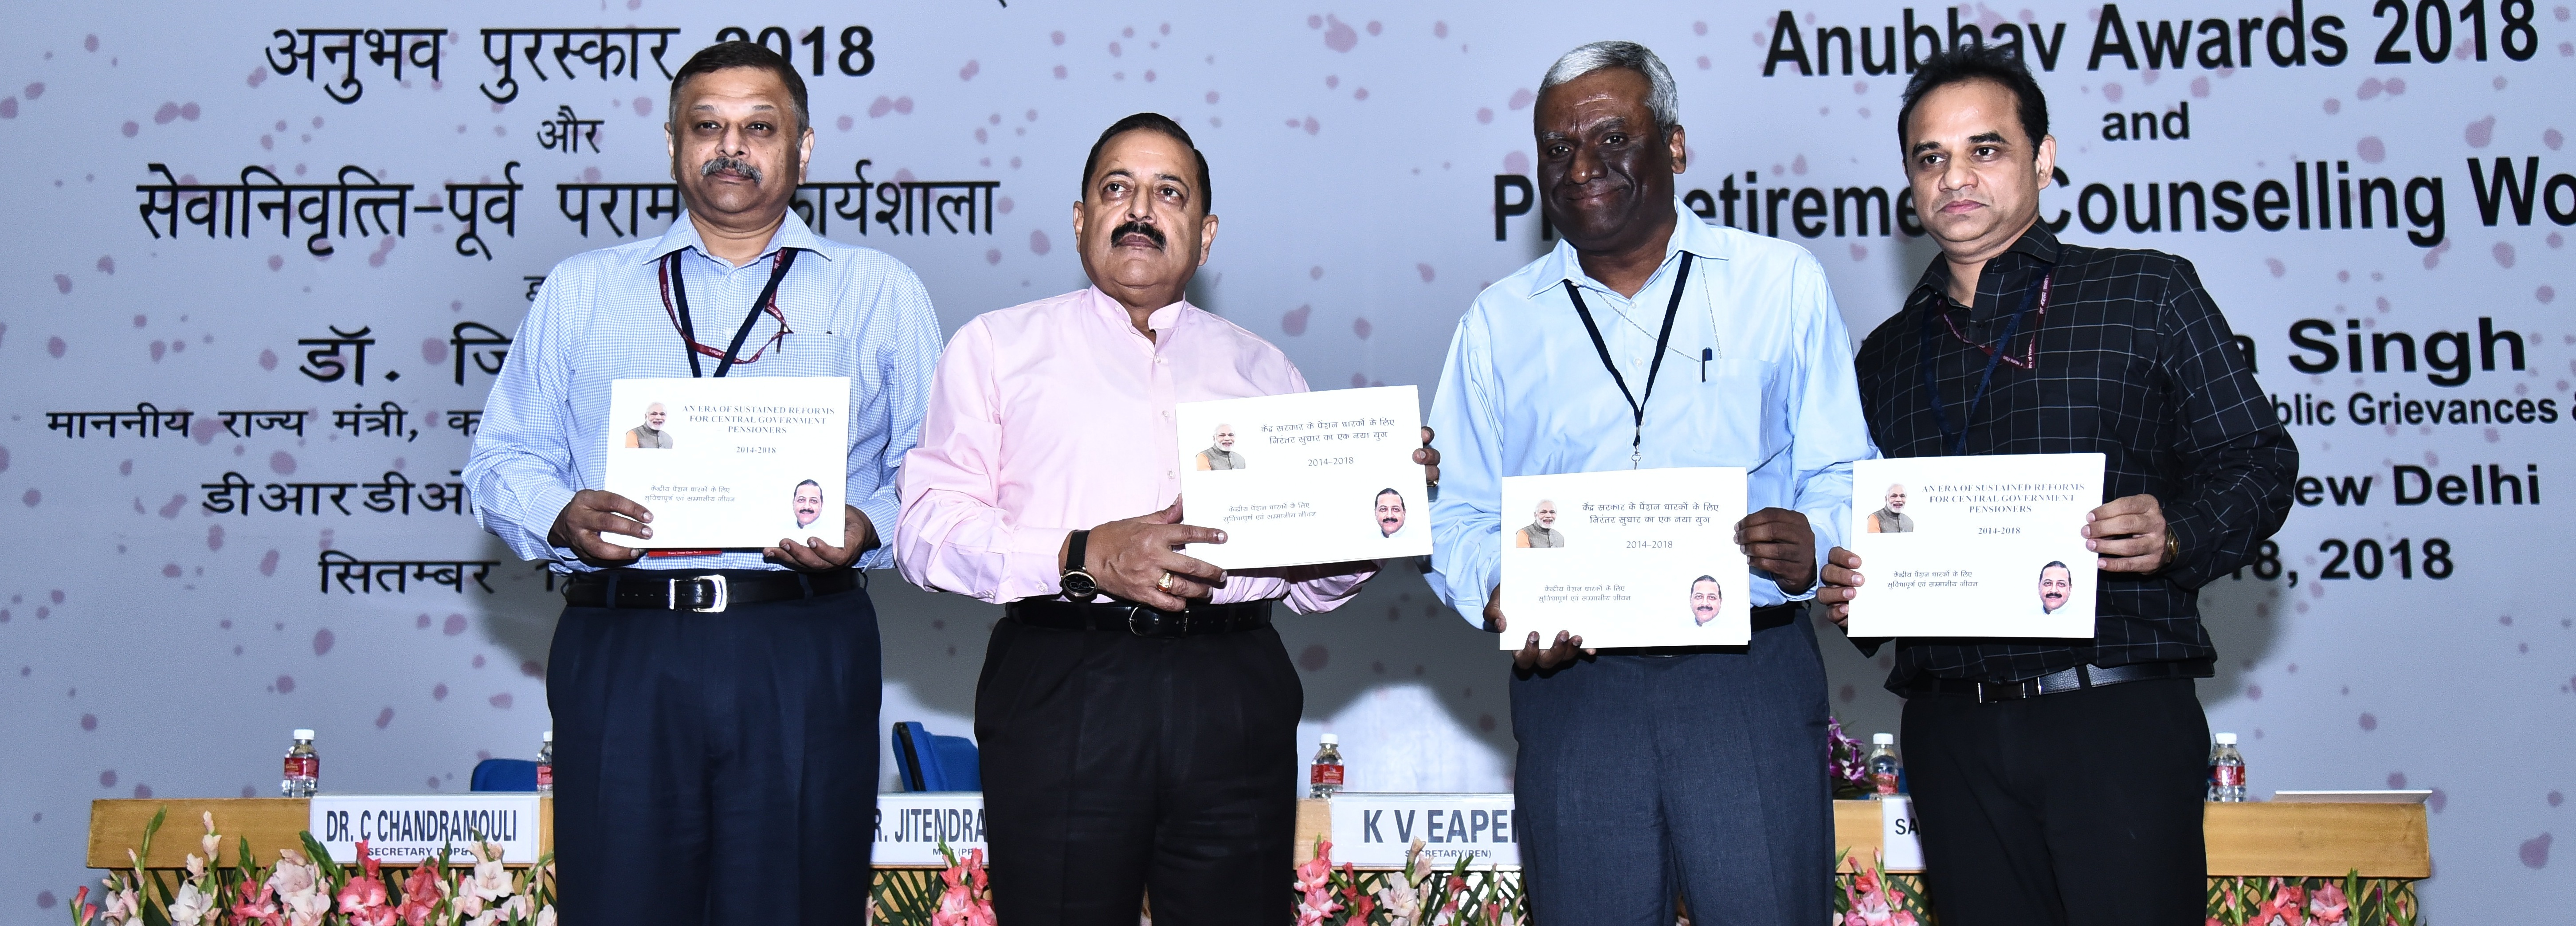 Inauguration of All India Pension Adalat, Anubhav Awards 2018 and Pre Retirement Counselling Workshop